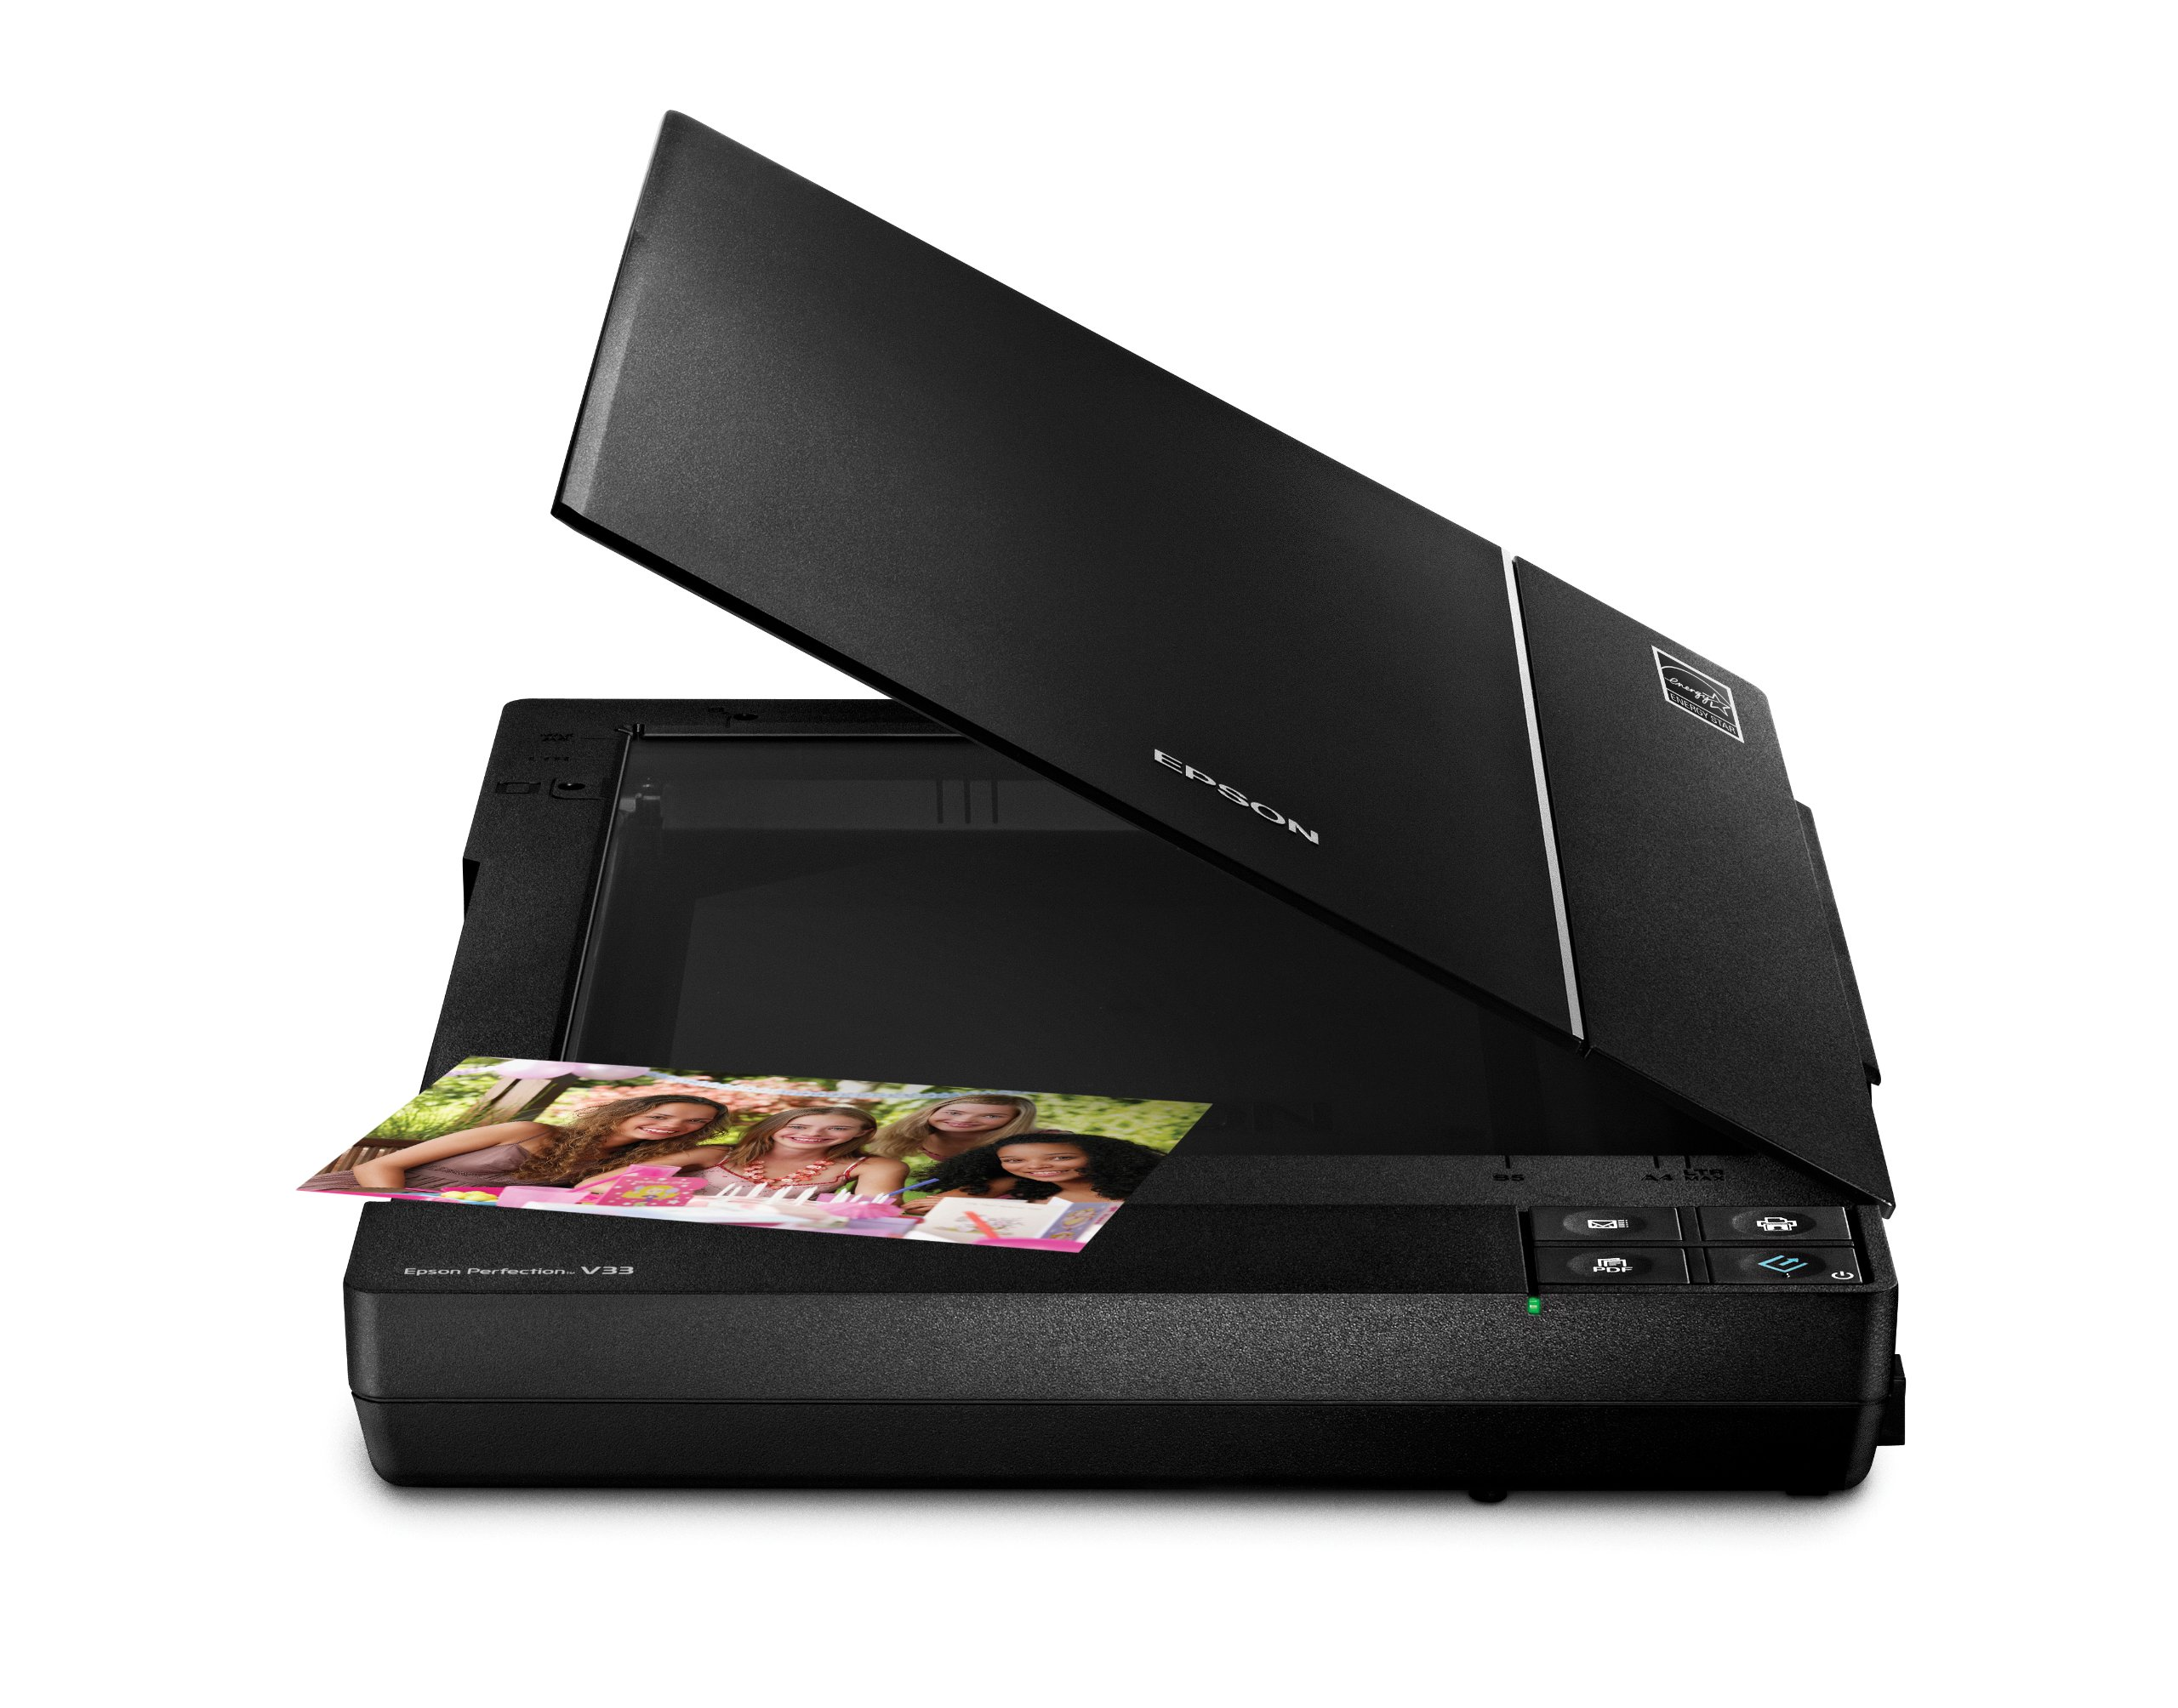 EPSON PERFECTION 610 FLATBED SCANNER DRIVERS FOR MAC